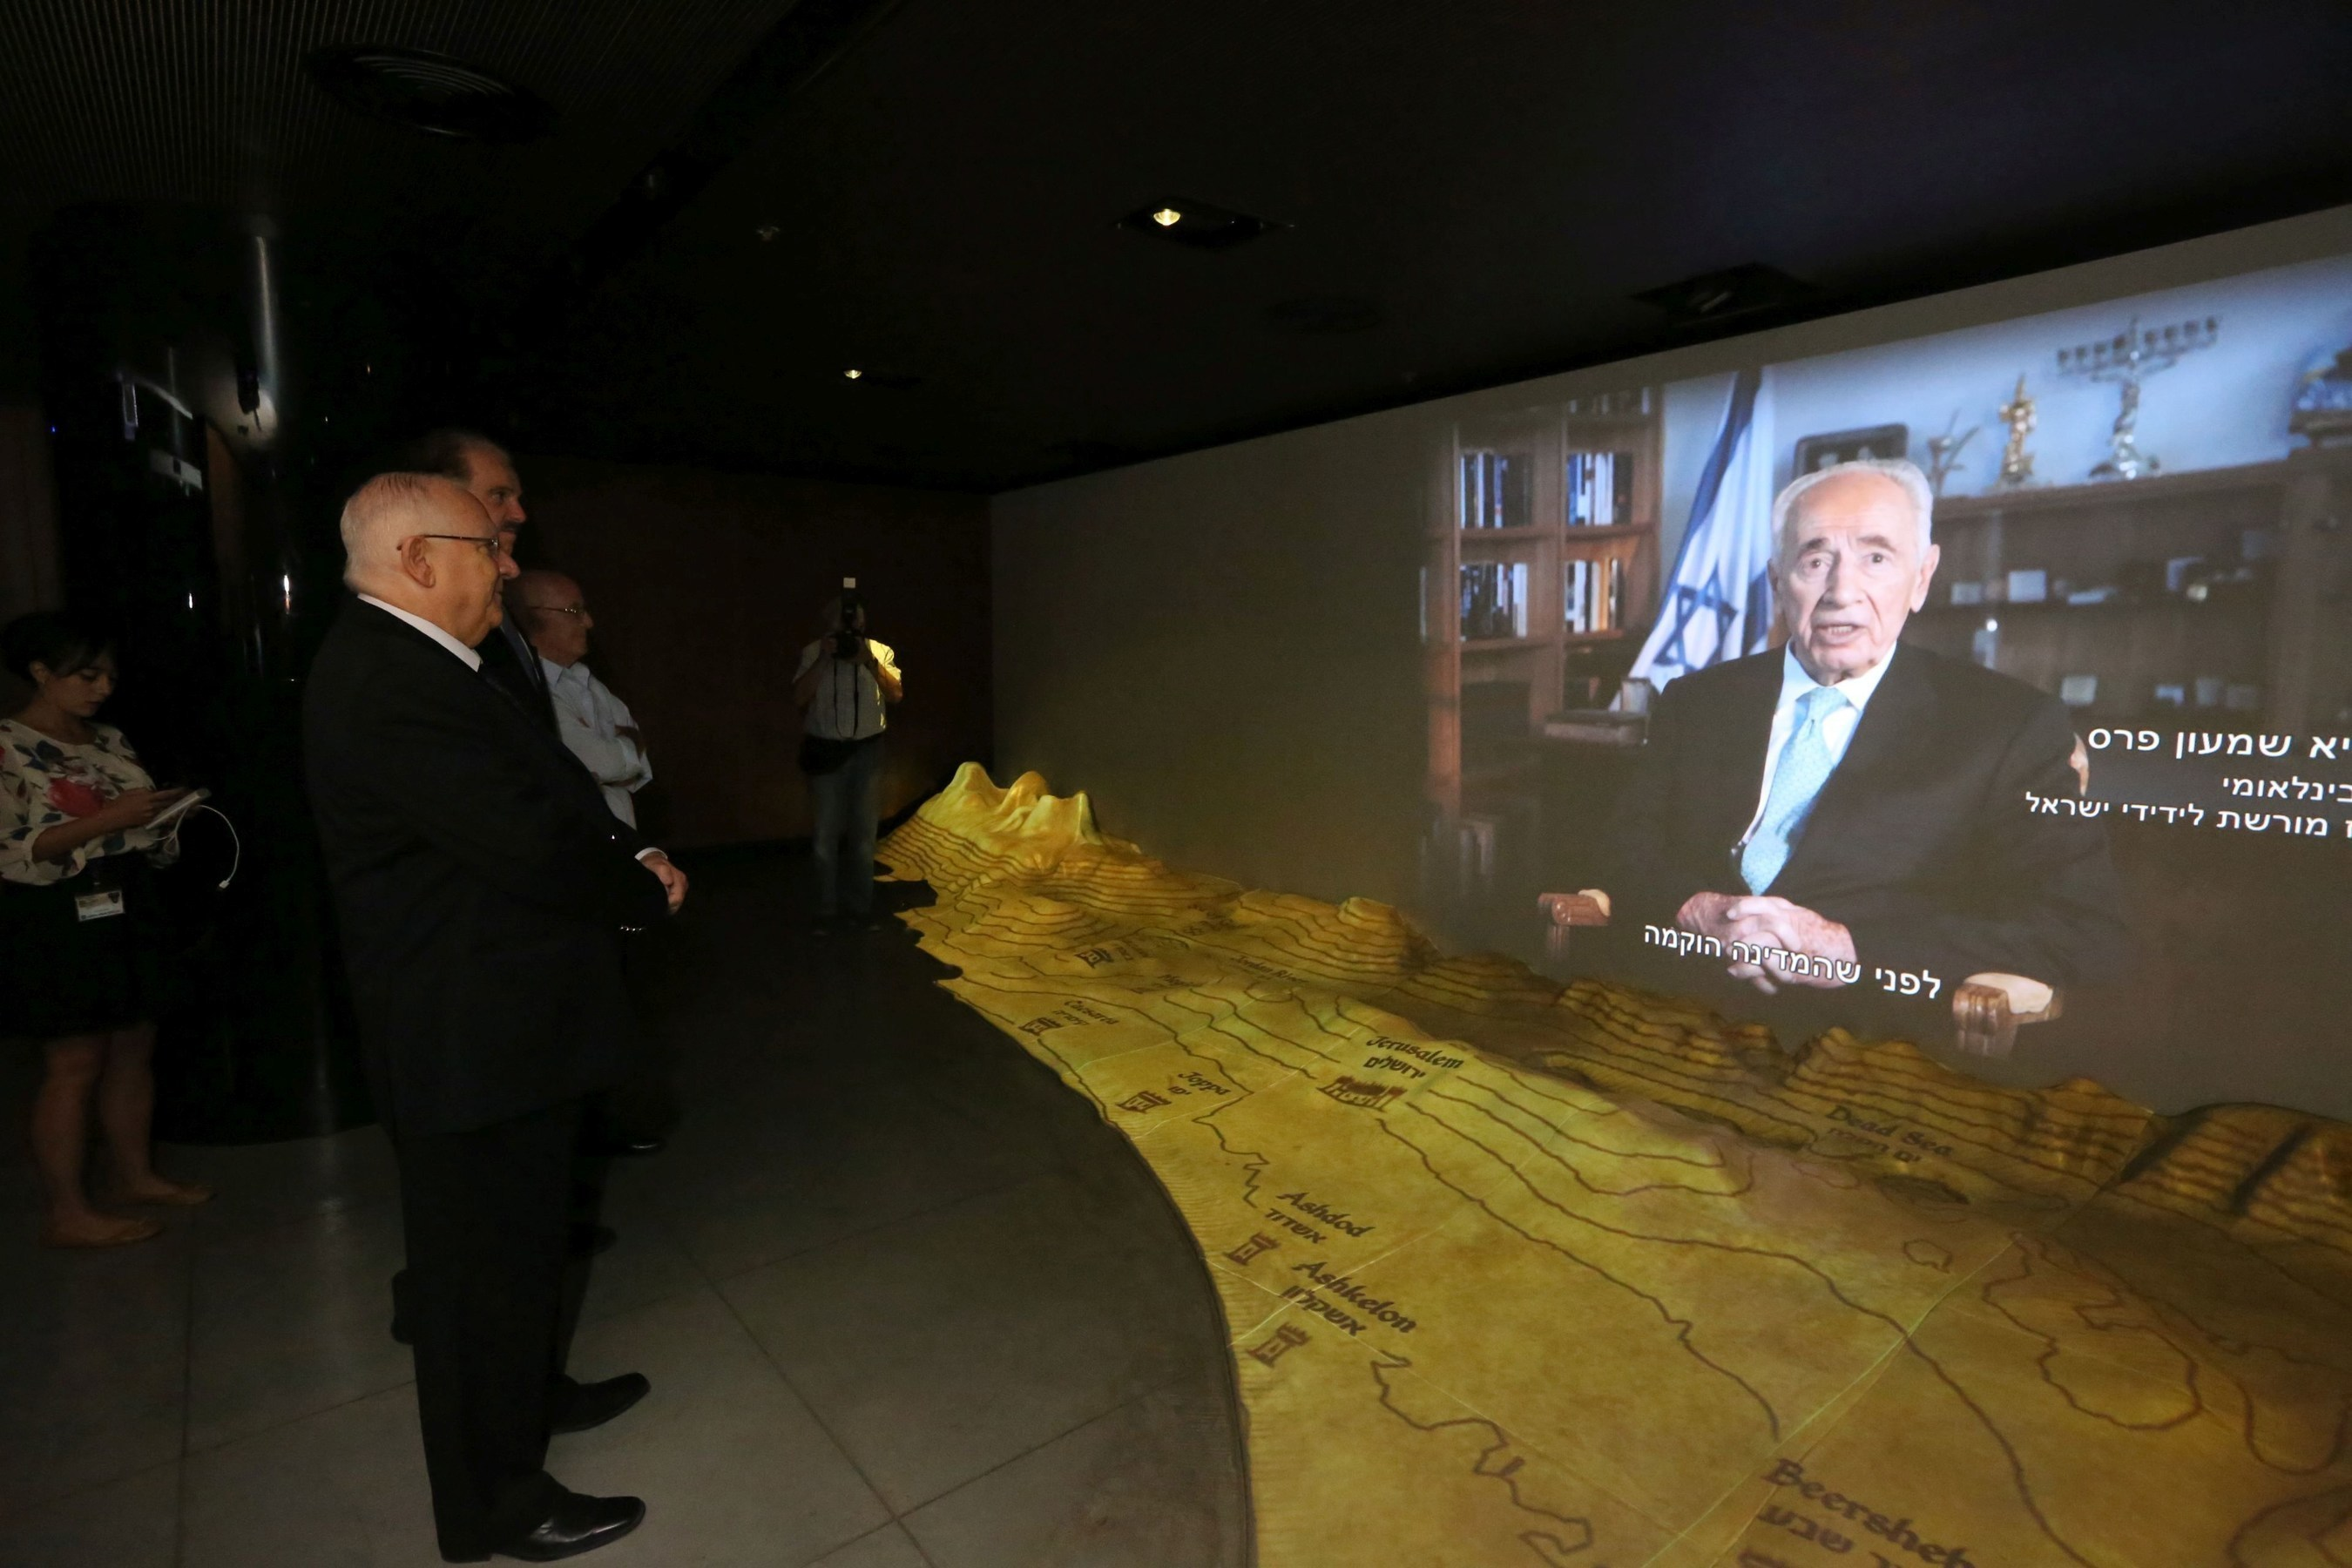 Israeli President Reuven Rivlin – joined by Dr. Evans, Museum Founder, and Gen. Peled, raised by Christians during the Holocaust – watching an introductory video by his predecessor, Shimon Peres, International Chairman of the Friends of Zion Museum. Photo Credit: Yossi Zamir